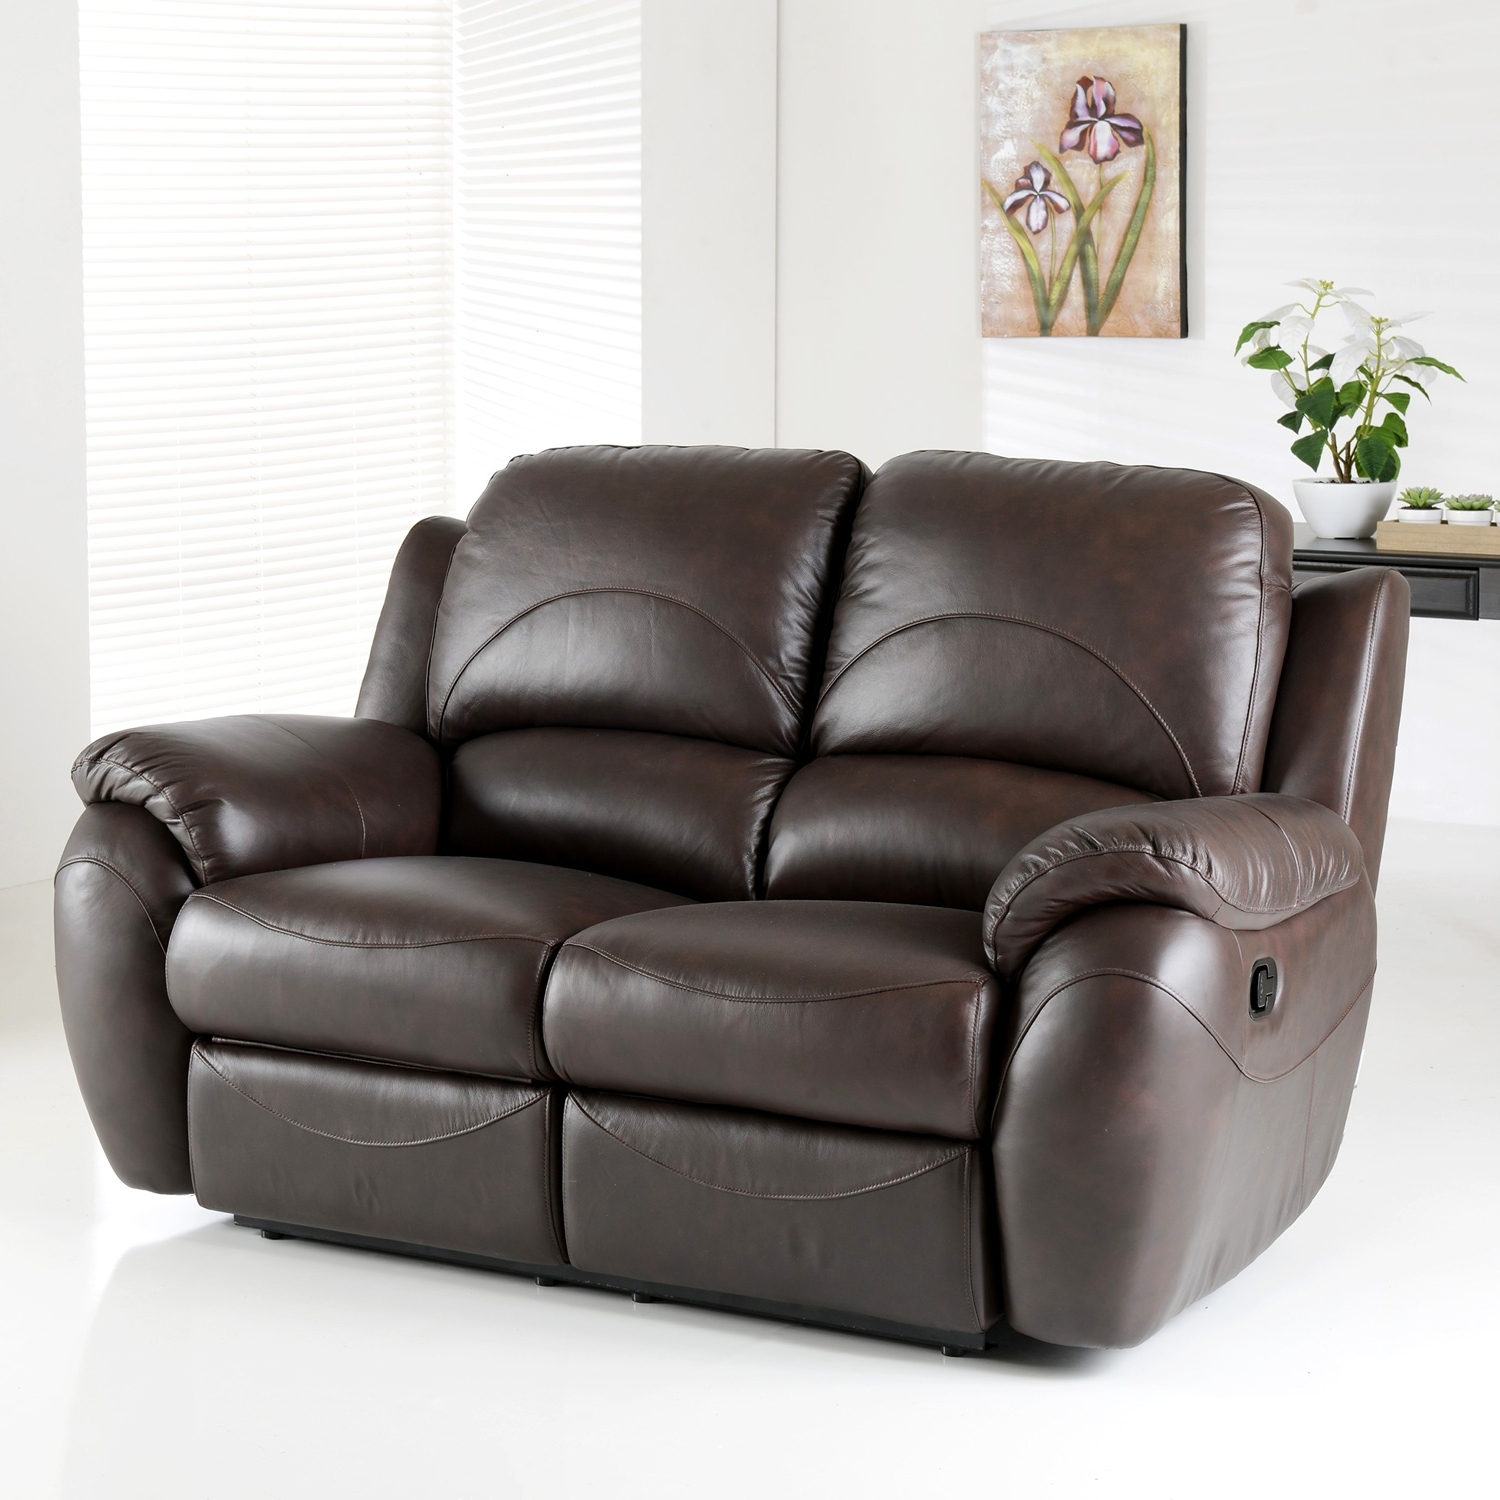 Recent Furniture : Natuzzi Leather Reclining Sectional Big Softie Chair Within 2 Seat Sectional Sofas (View 11 of 20)